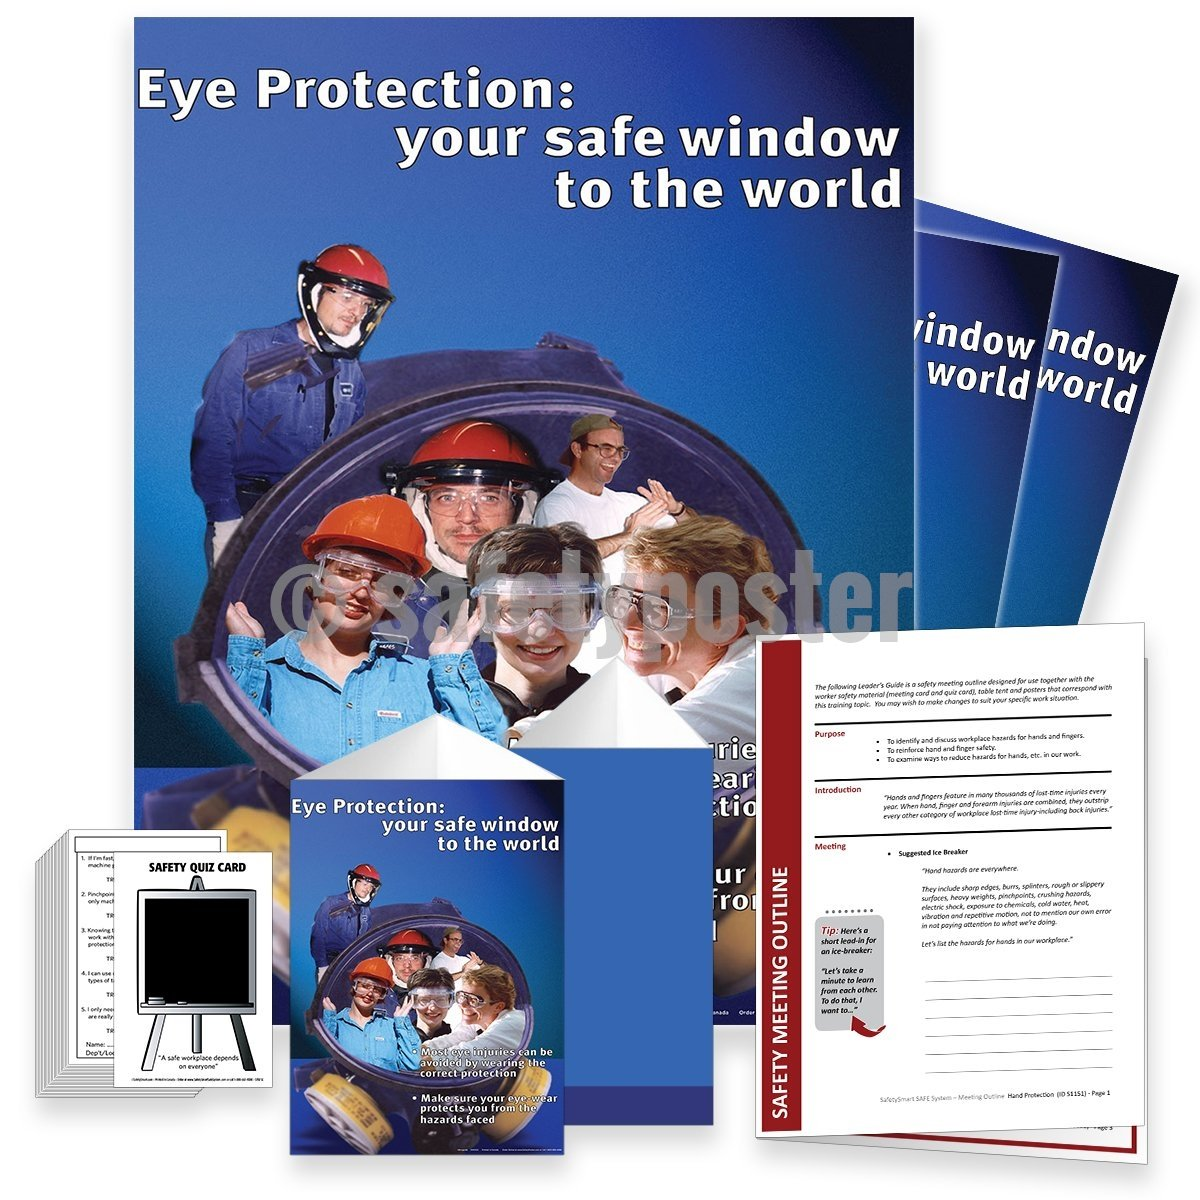 Safety Meeting Kit - Eye Protection Your Safe Window To The World